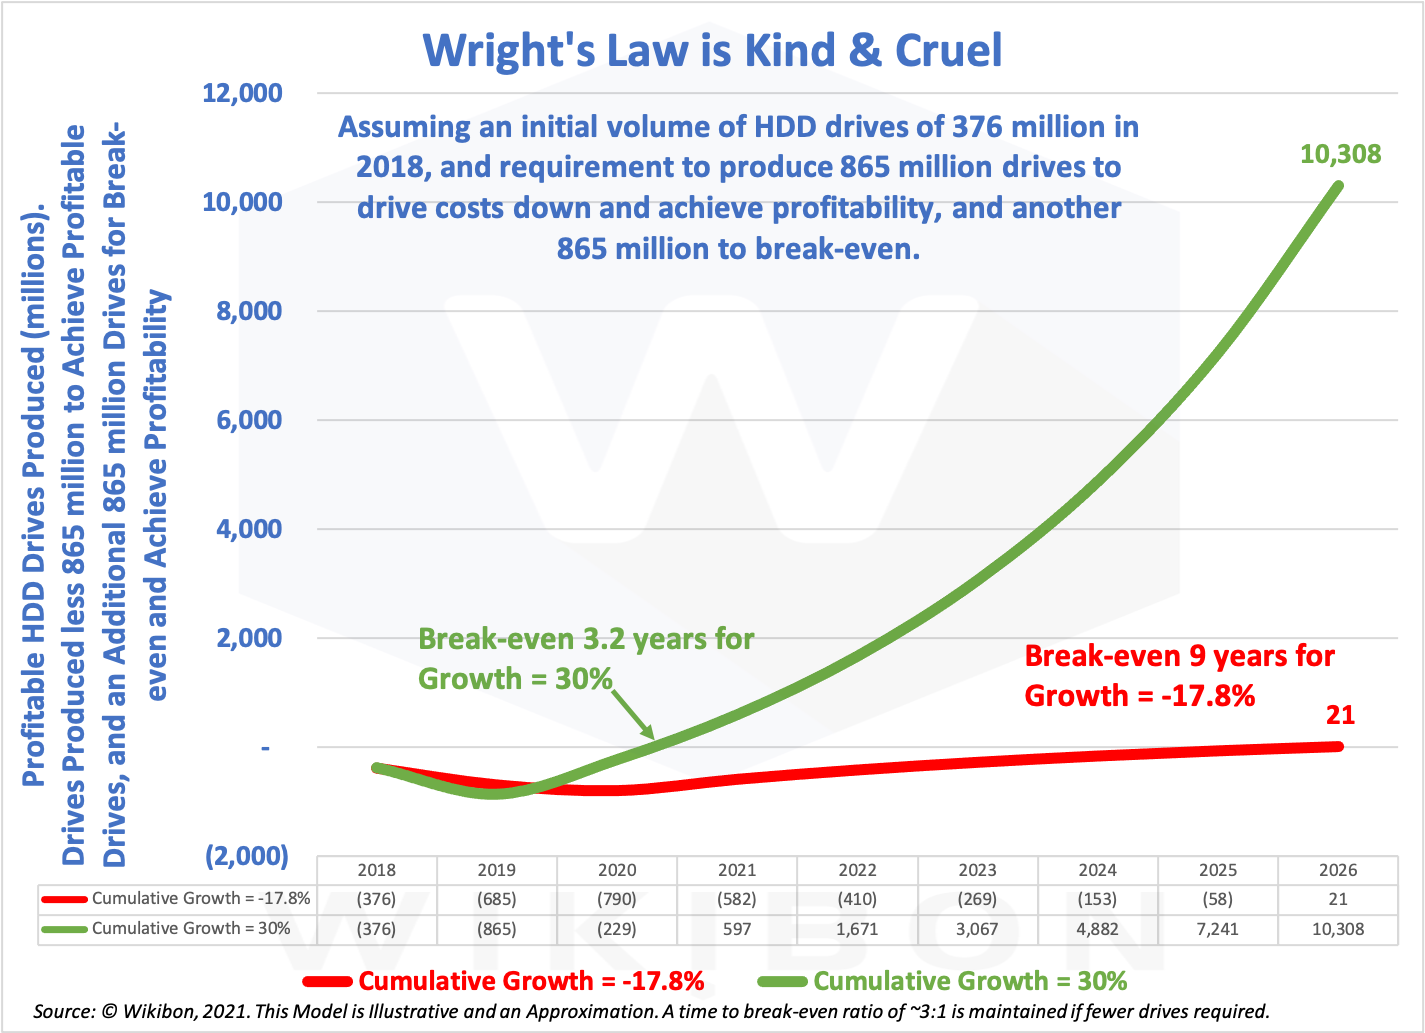 Cruelty of Wright's Law for HDD